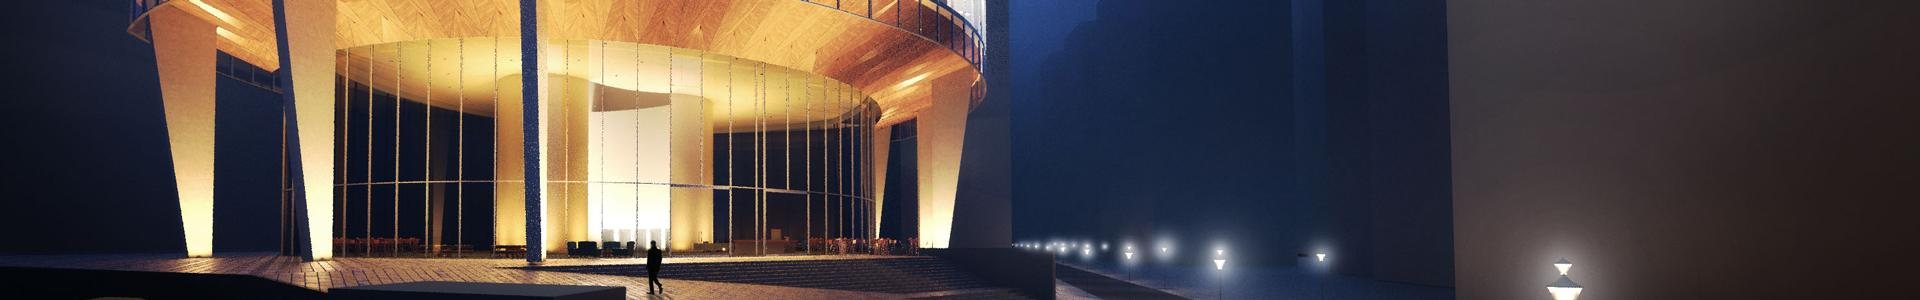 Rendering Commercial Exterior (Night)